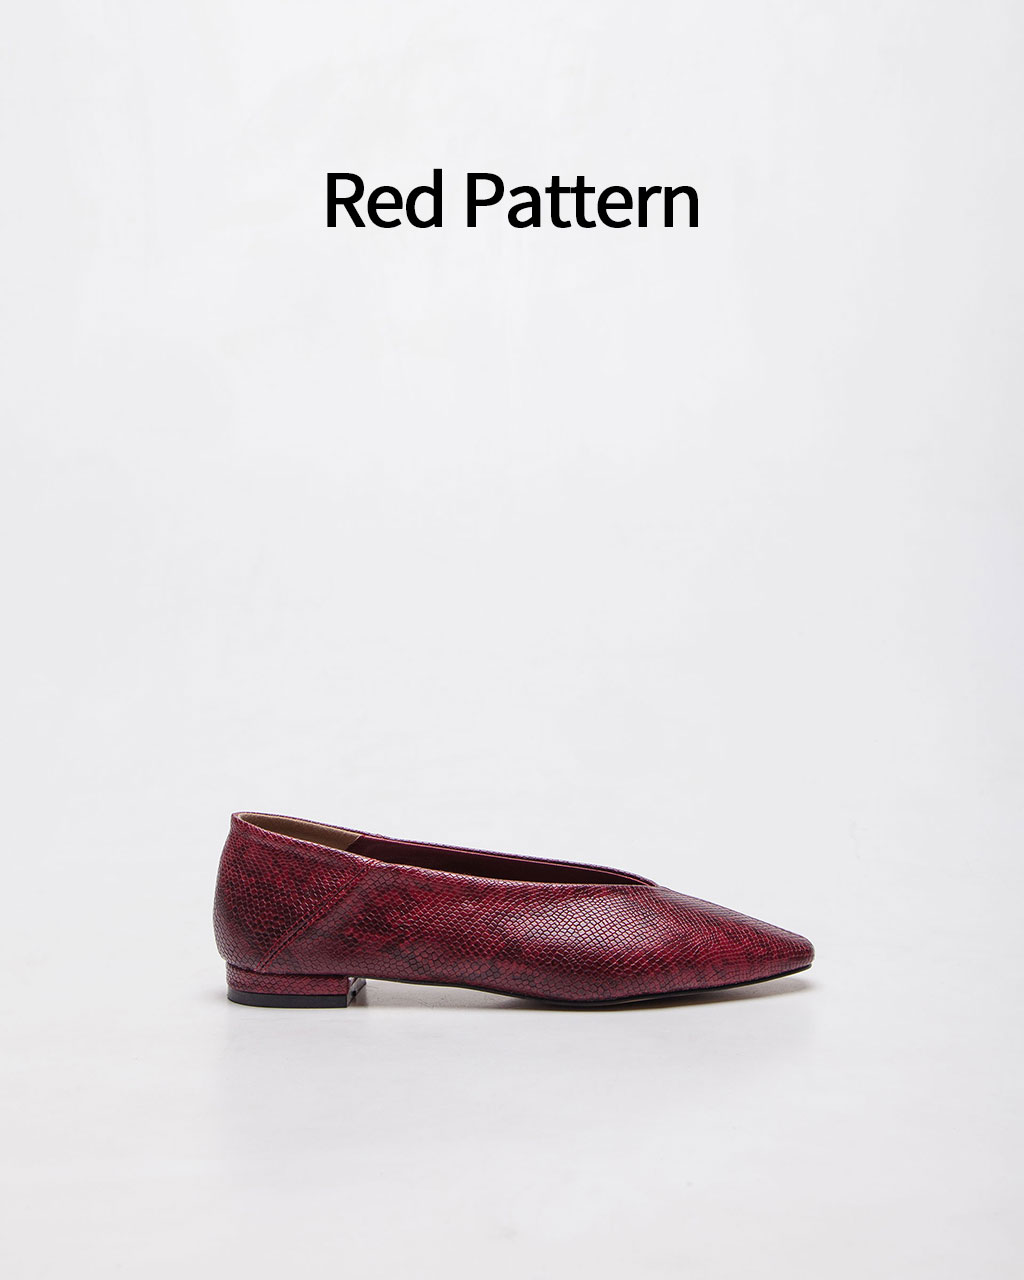 Tagtraume Clever-07 - Red Pattern(레드 패턴)